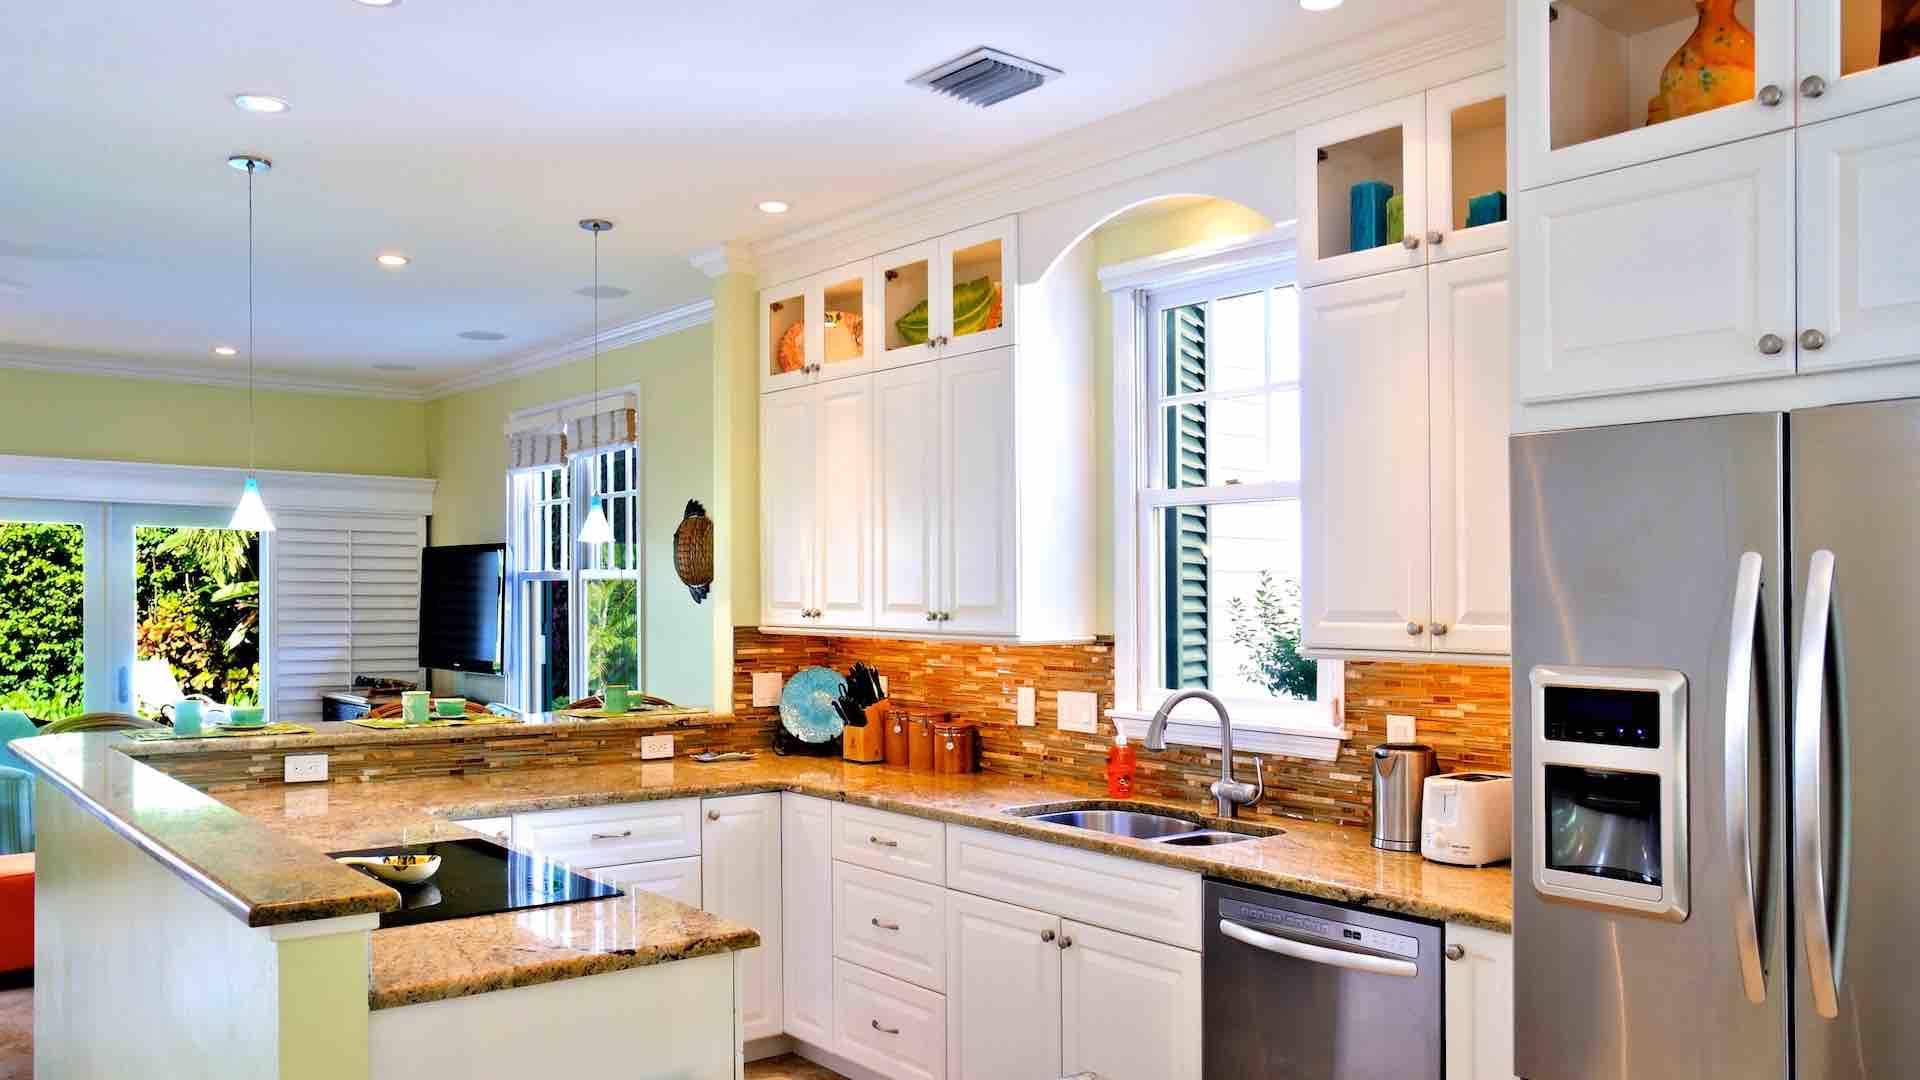 You will not want for anything in this kitchen. Missing something? Just Call us!